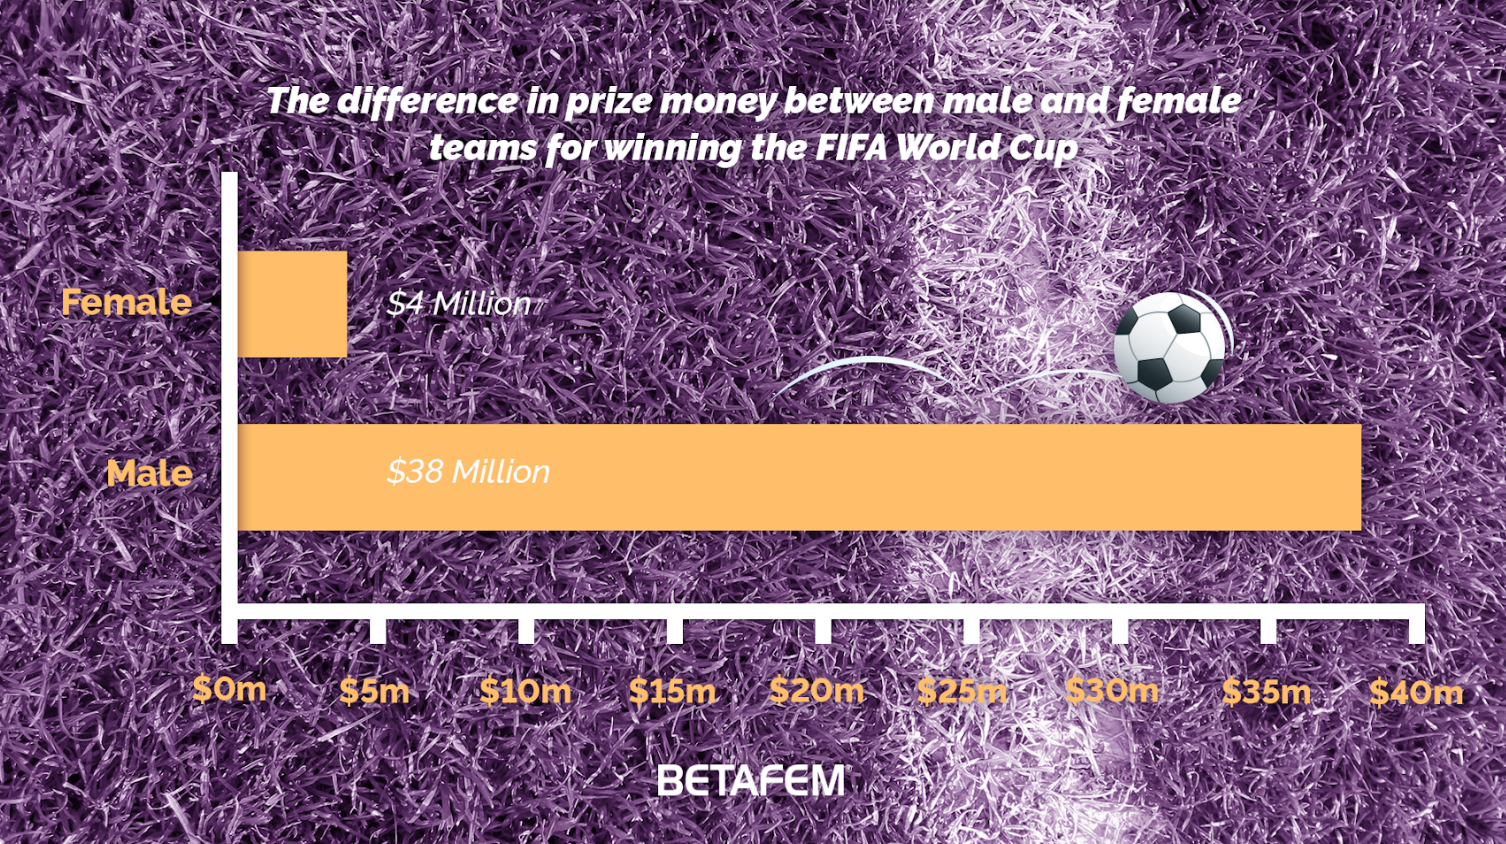 Prize money differences between male and female teams winning fifa world cup